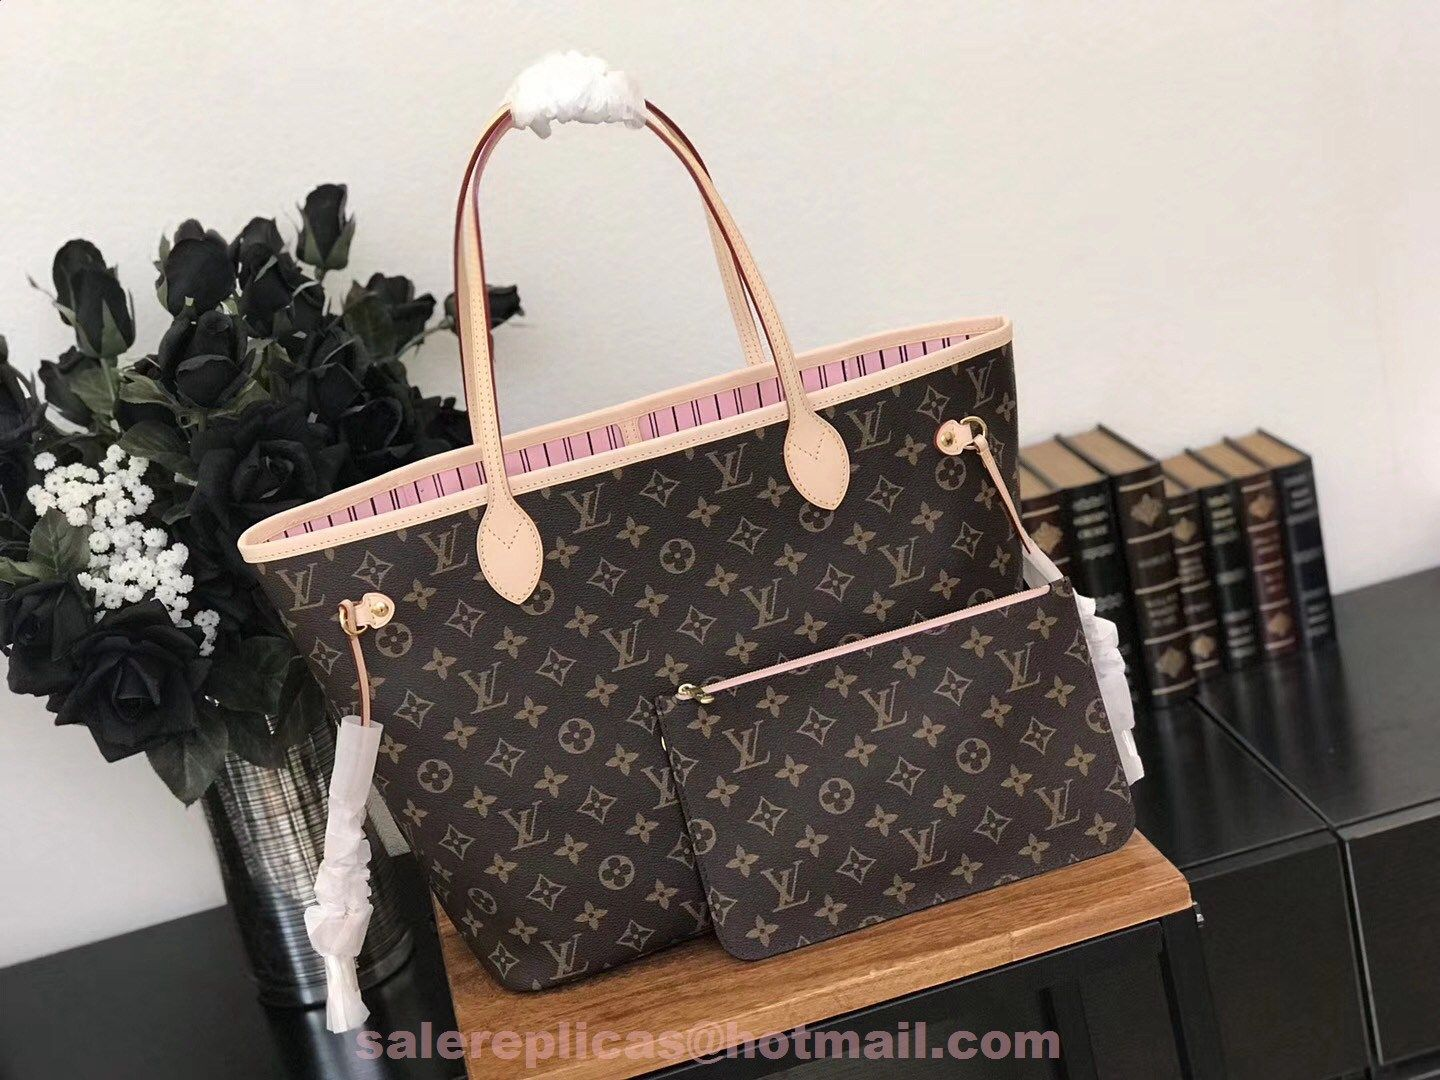 replica Louis Vuitton Neverfull MM Monogram Canvas Handbag M41178-Pivoine 8a01acccab489